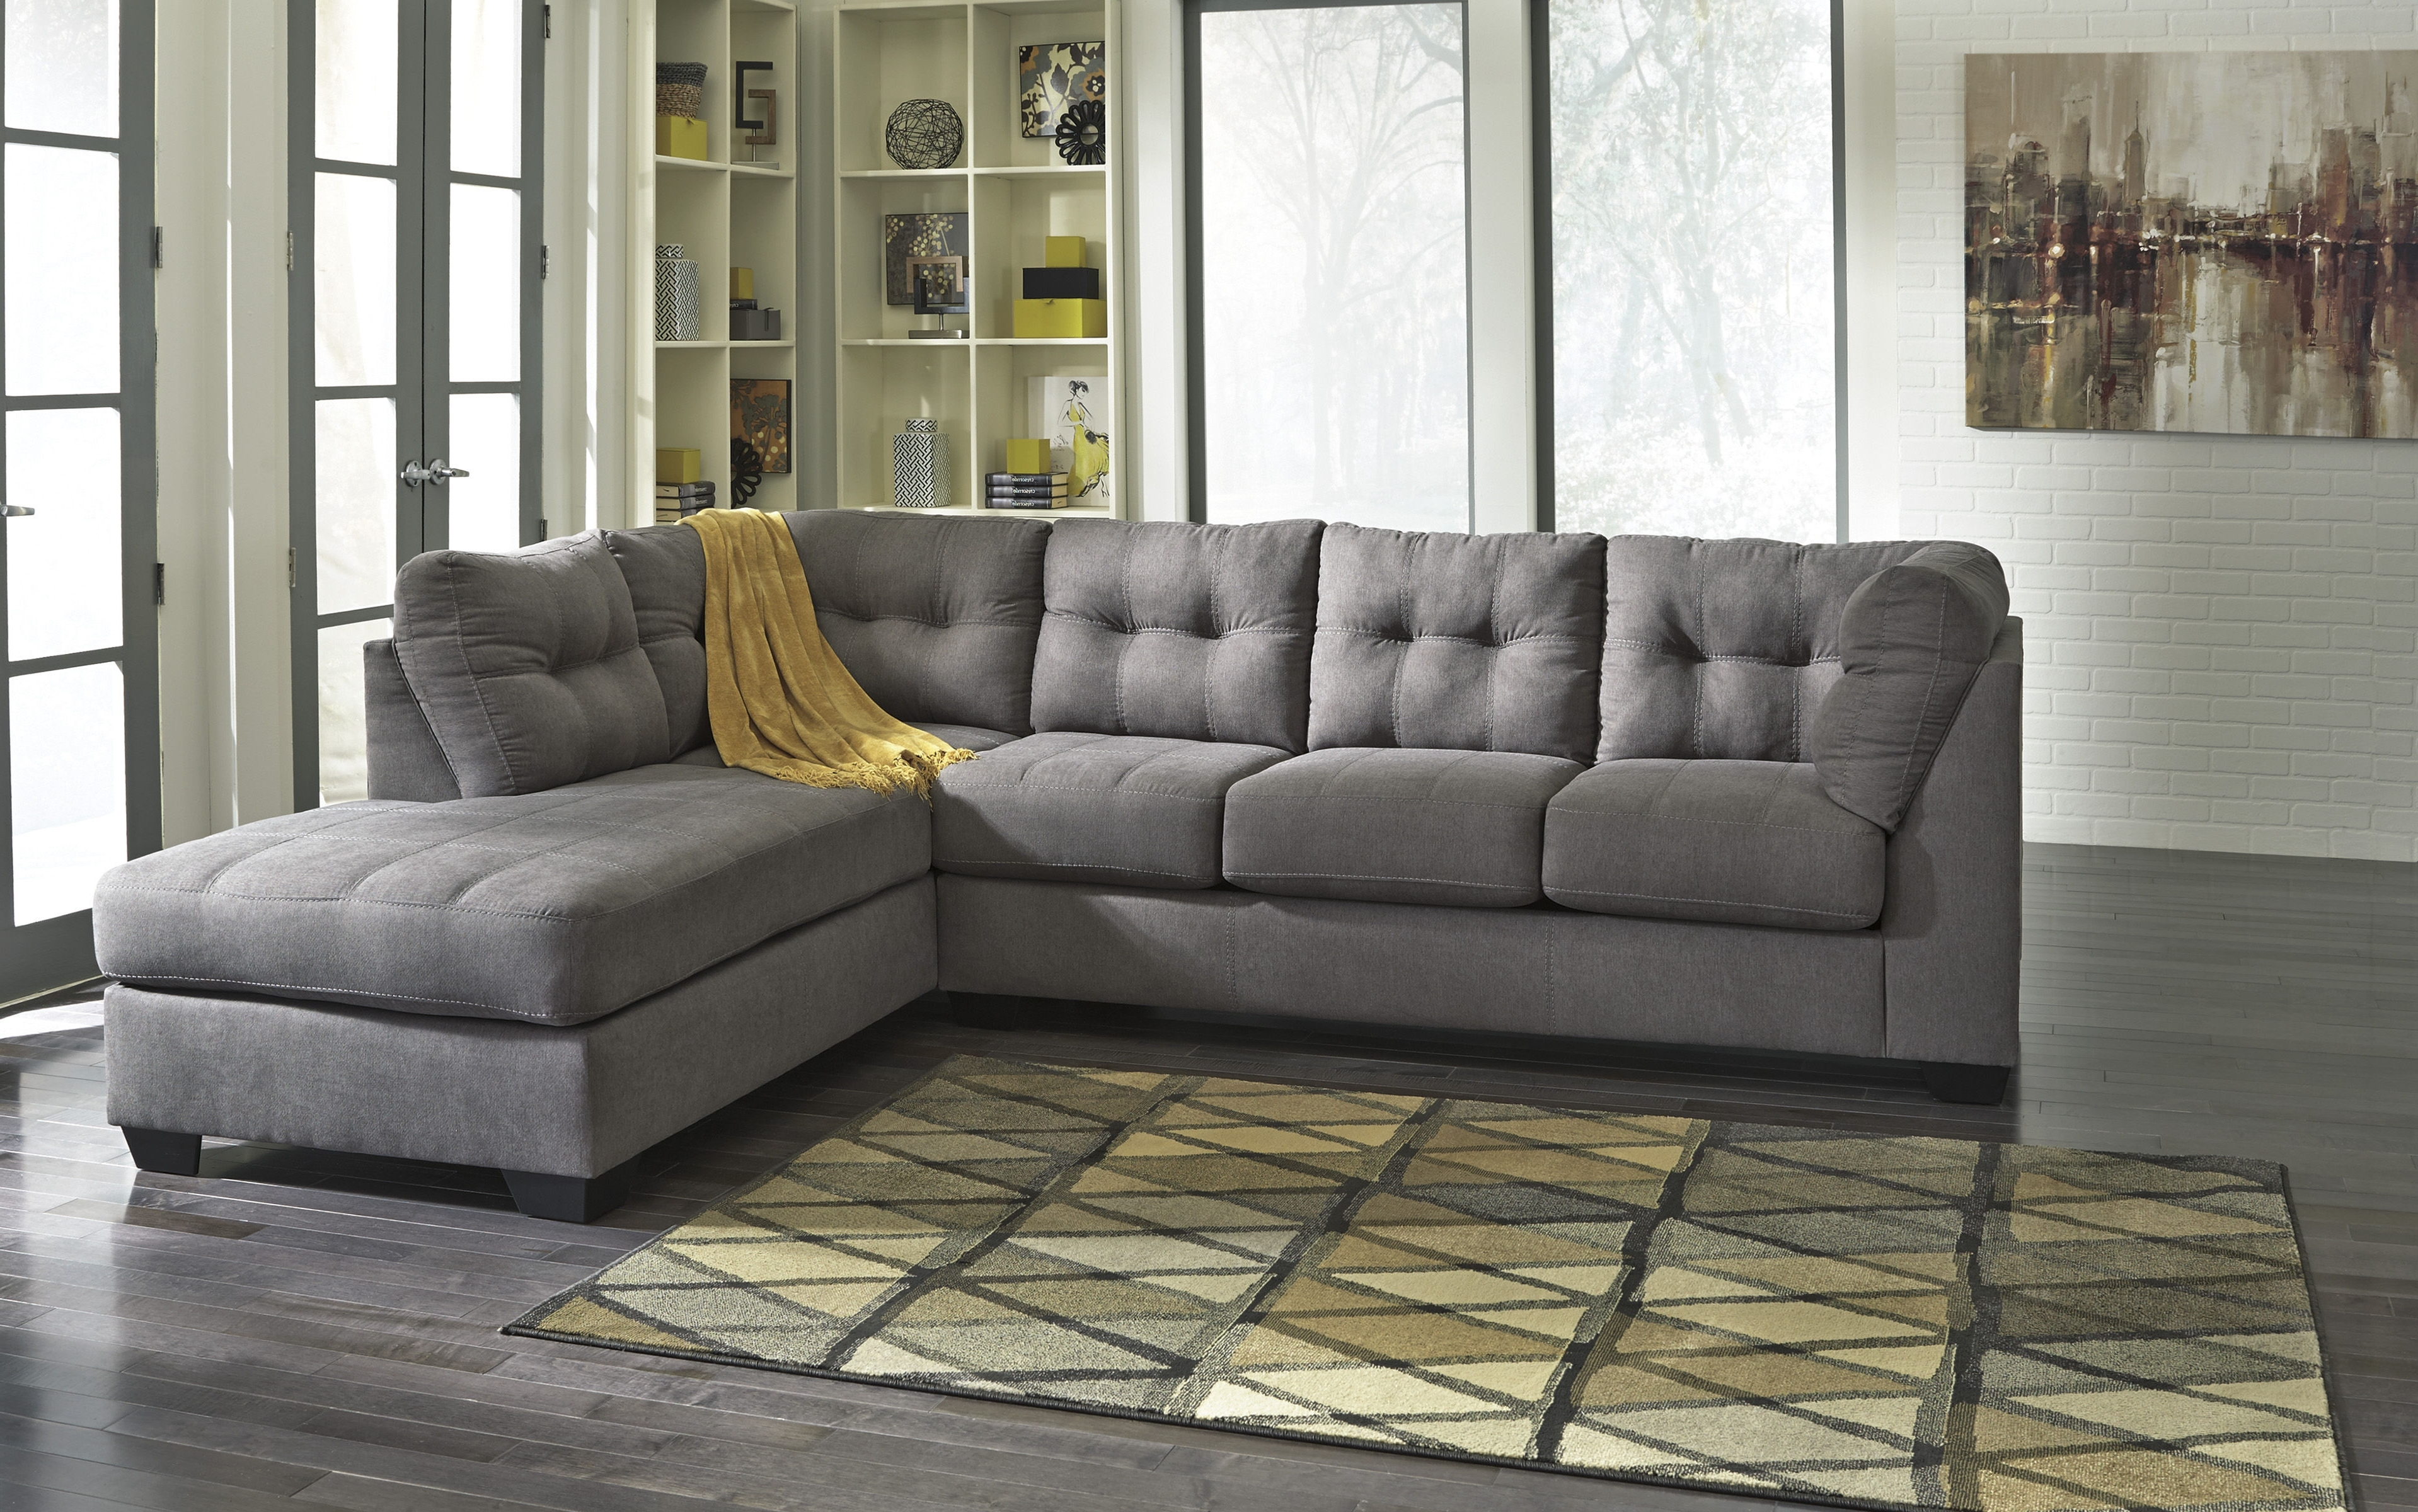 Ashley Furniture Maier Charcoal Raf Chaise Sectional (View 2 of 15)